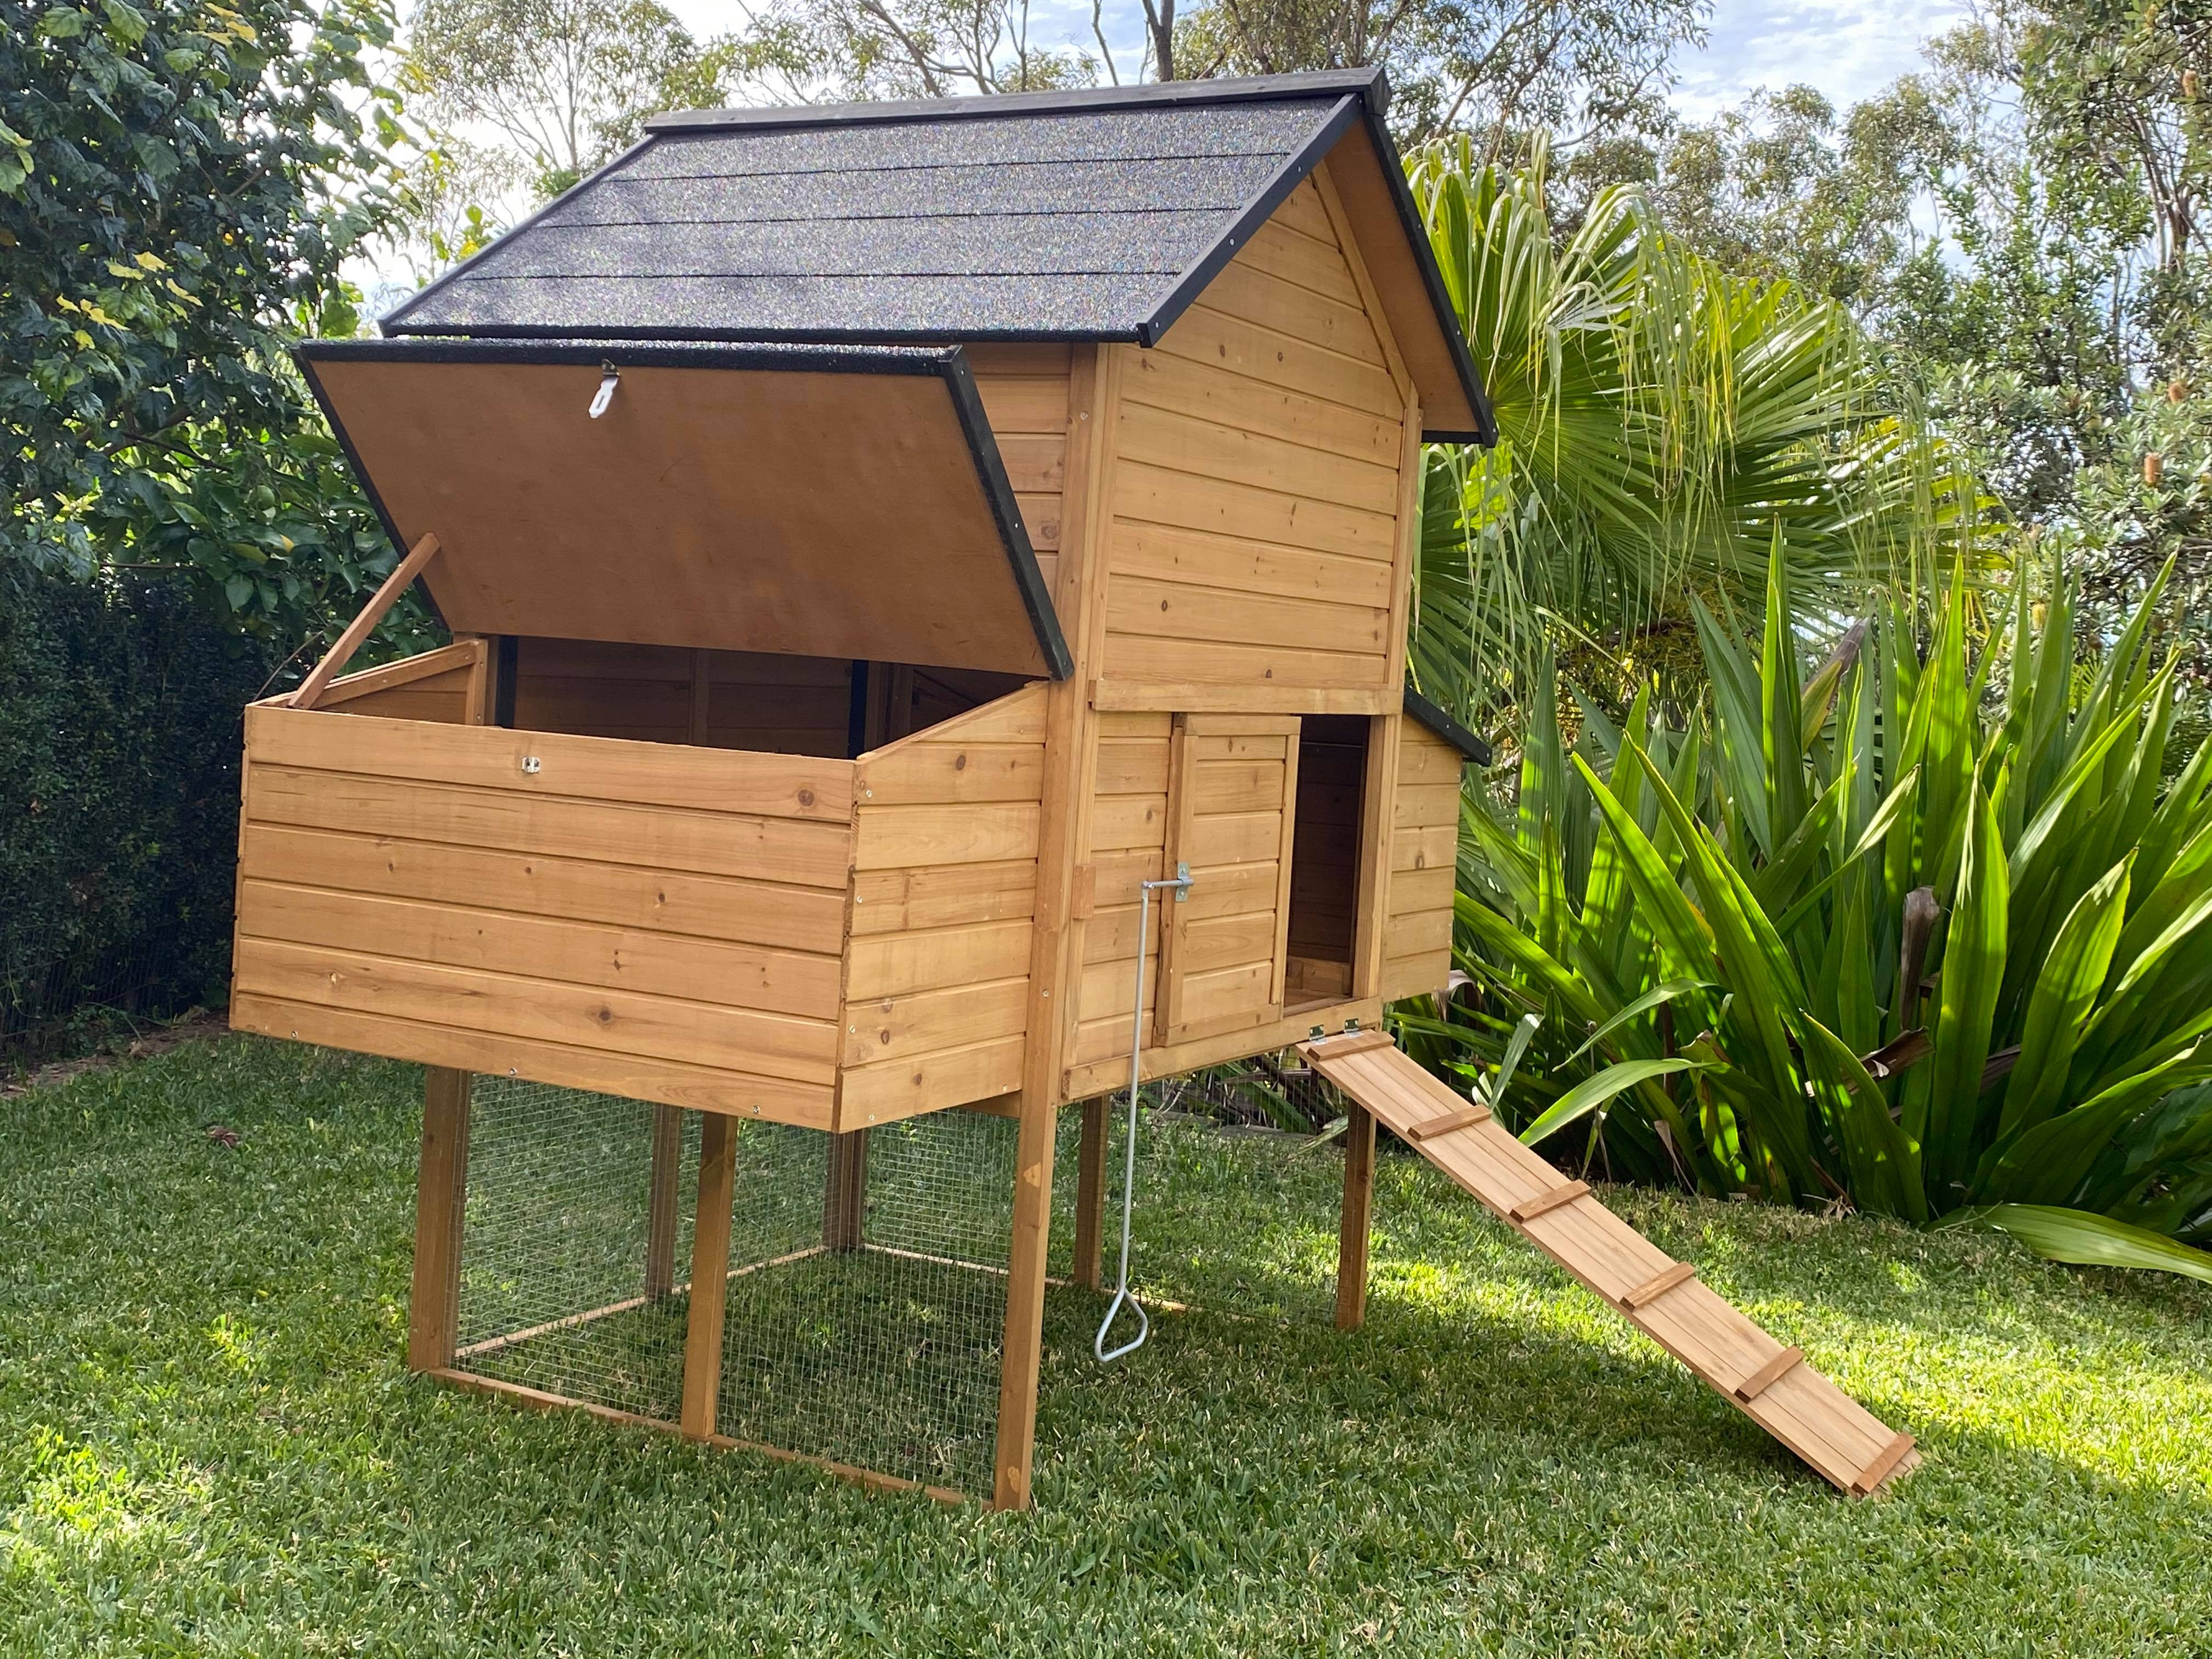 Cabana Chicken Coop without ramp gallery image